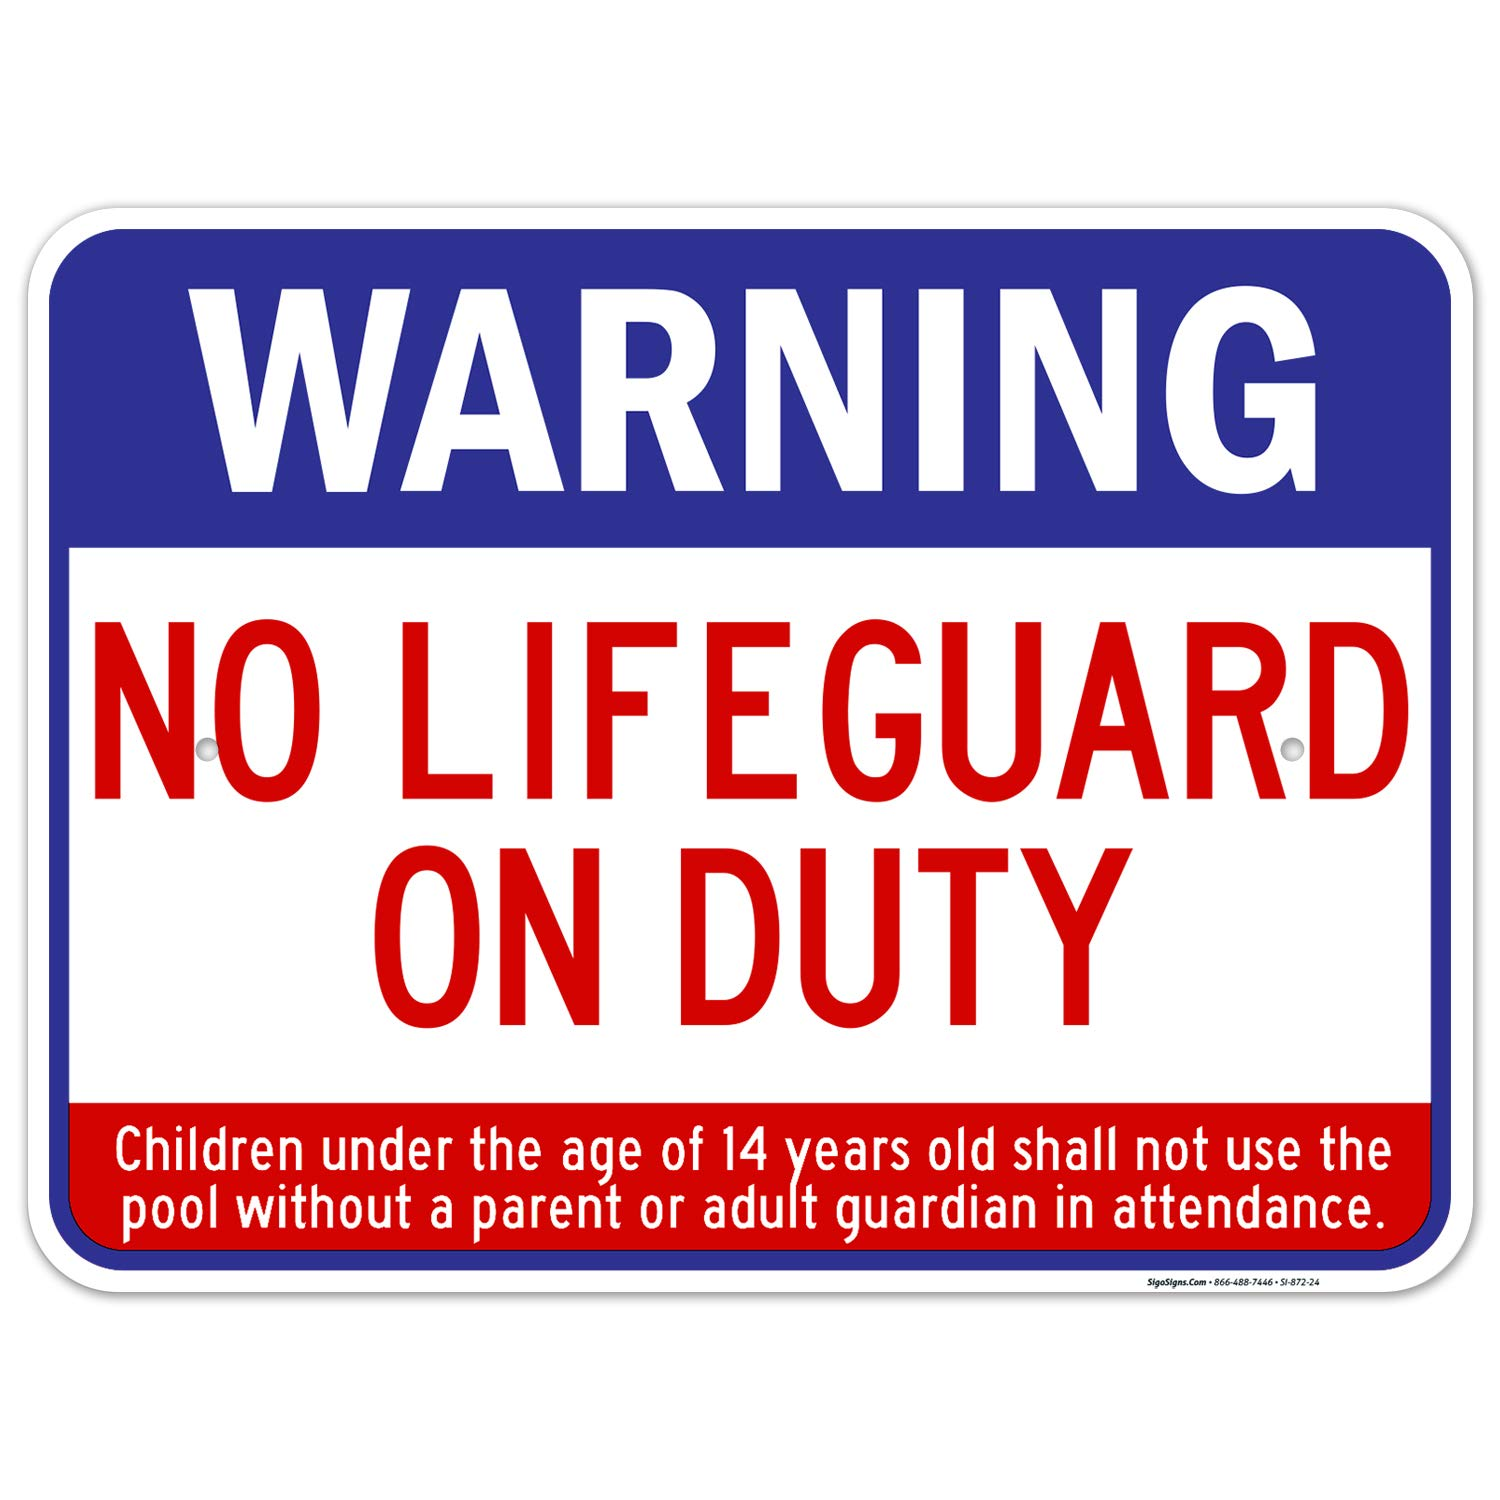 In stock Swimming Pool Sign Warning No Duty On It is very popular Lifeguard